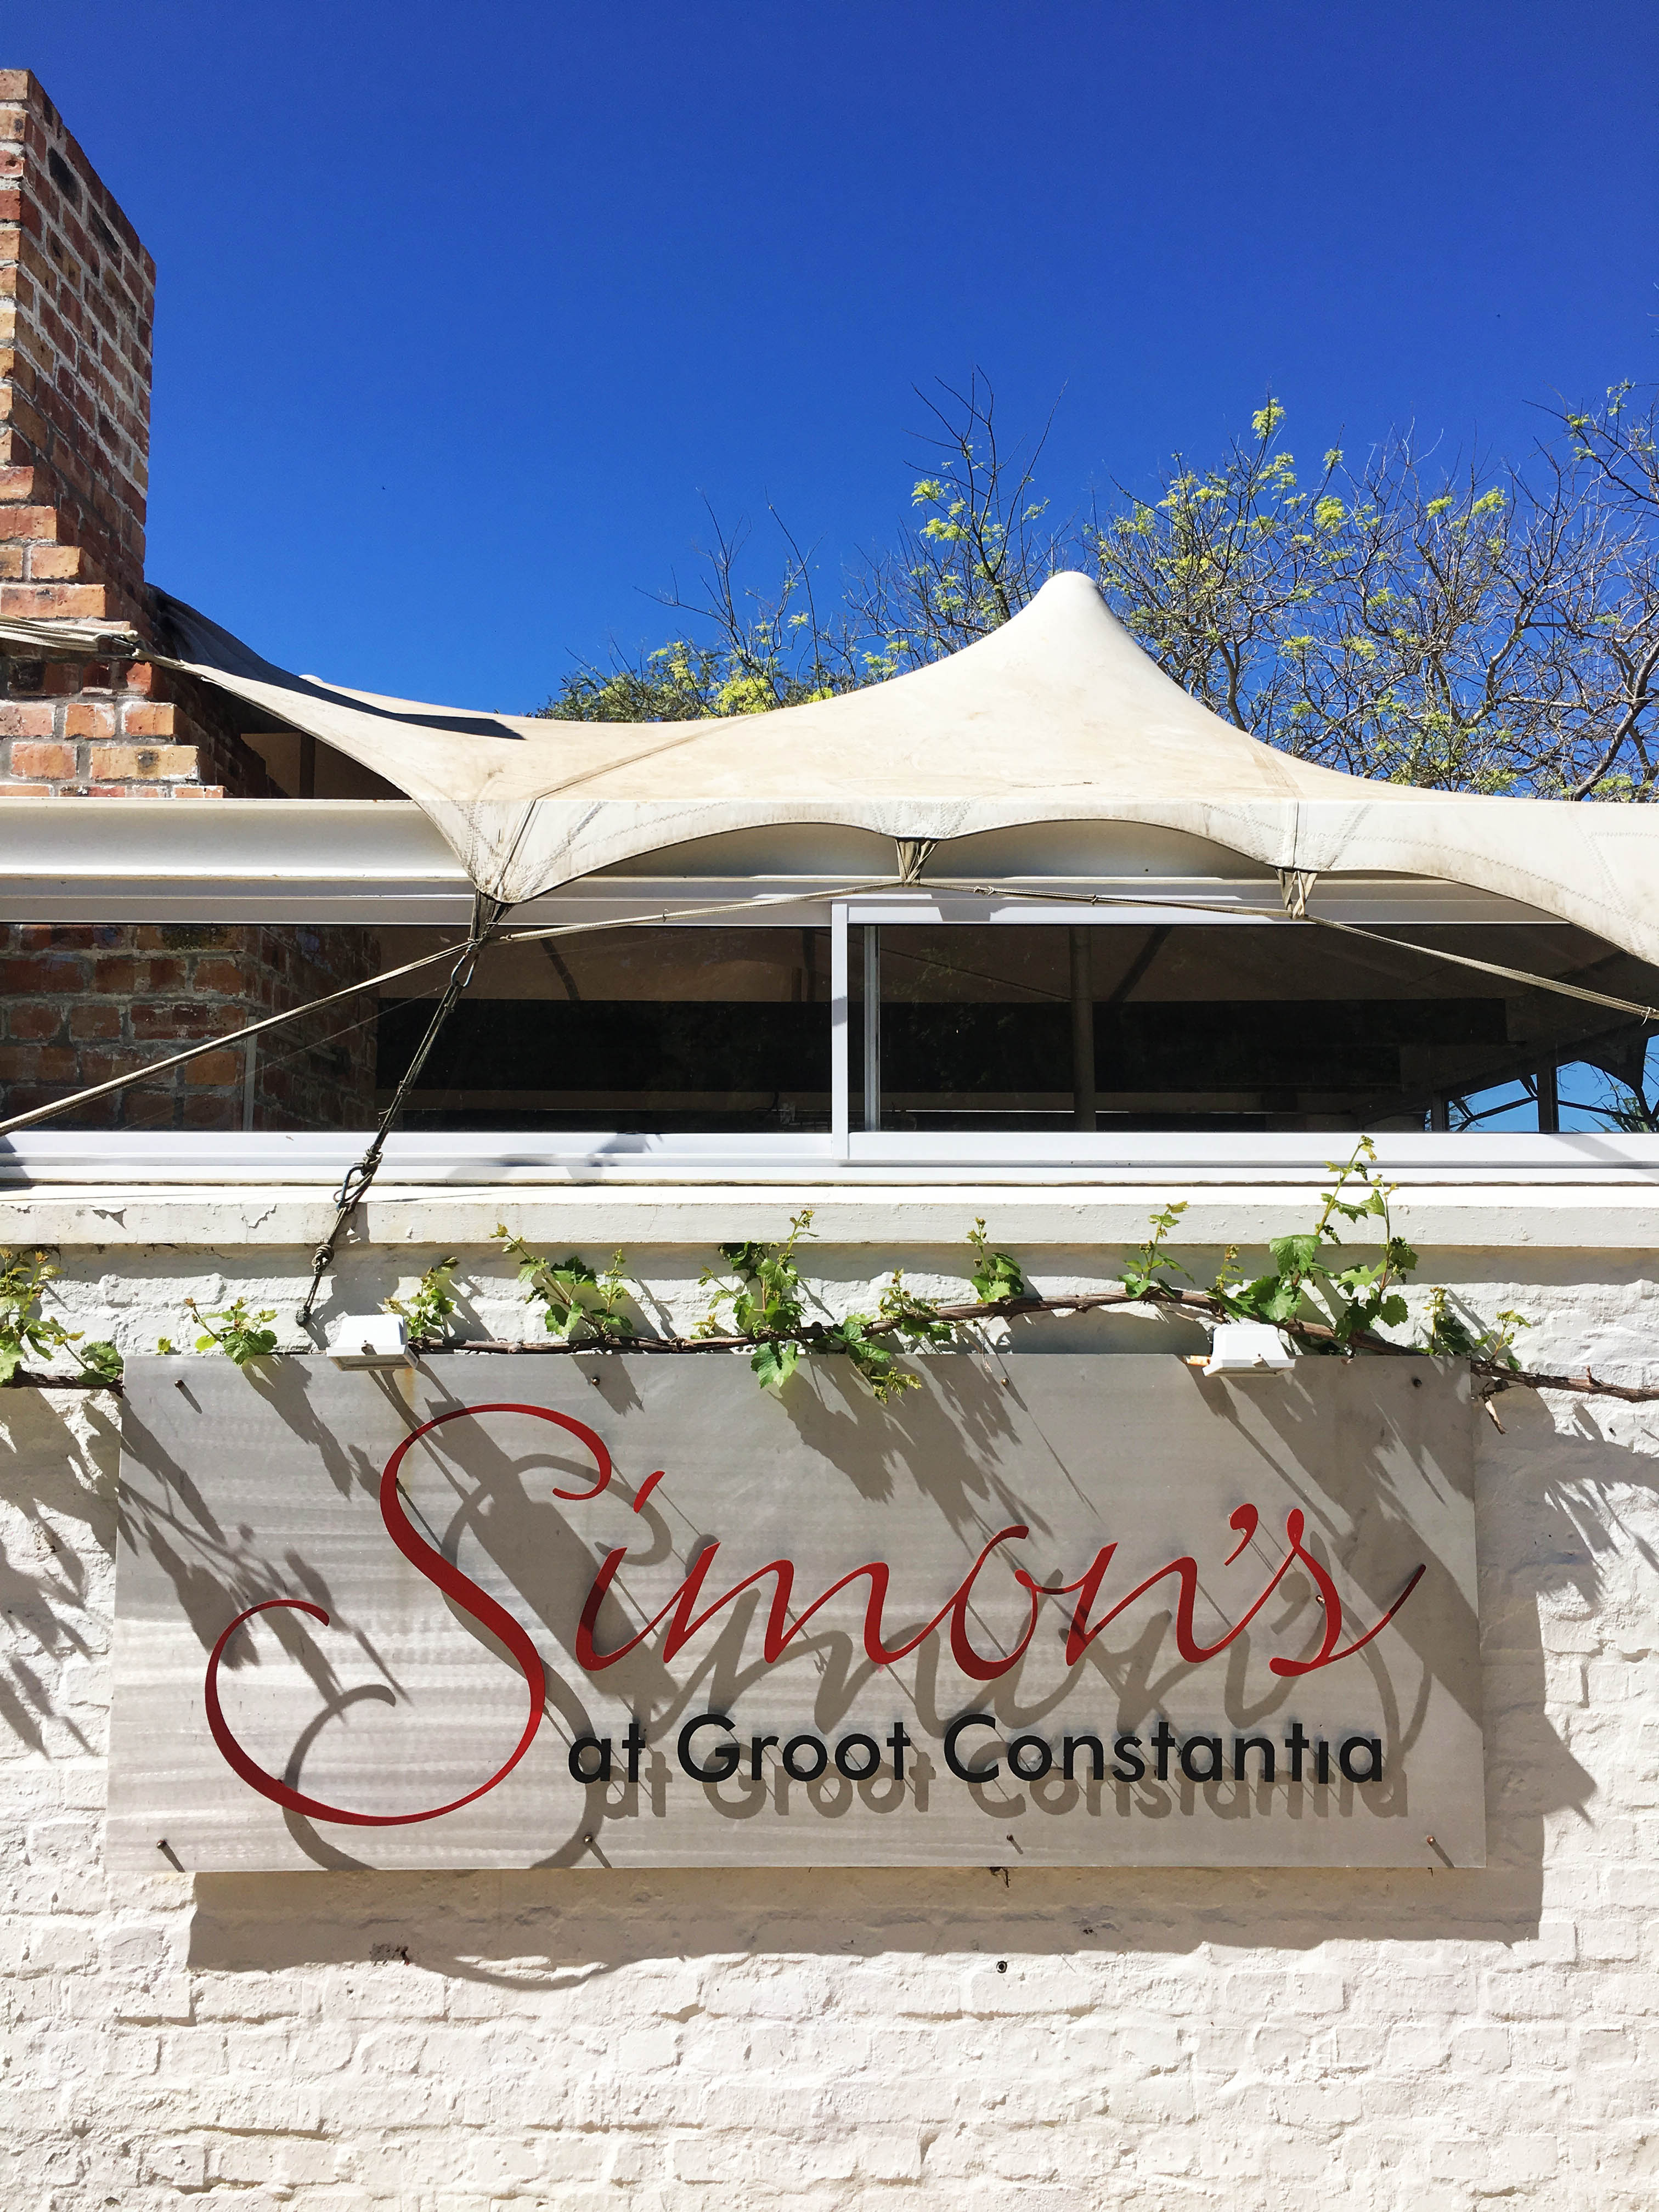 The Social Needia Reviews x Simons at Groot Constantia